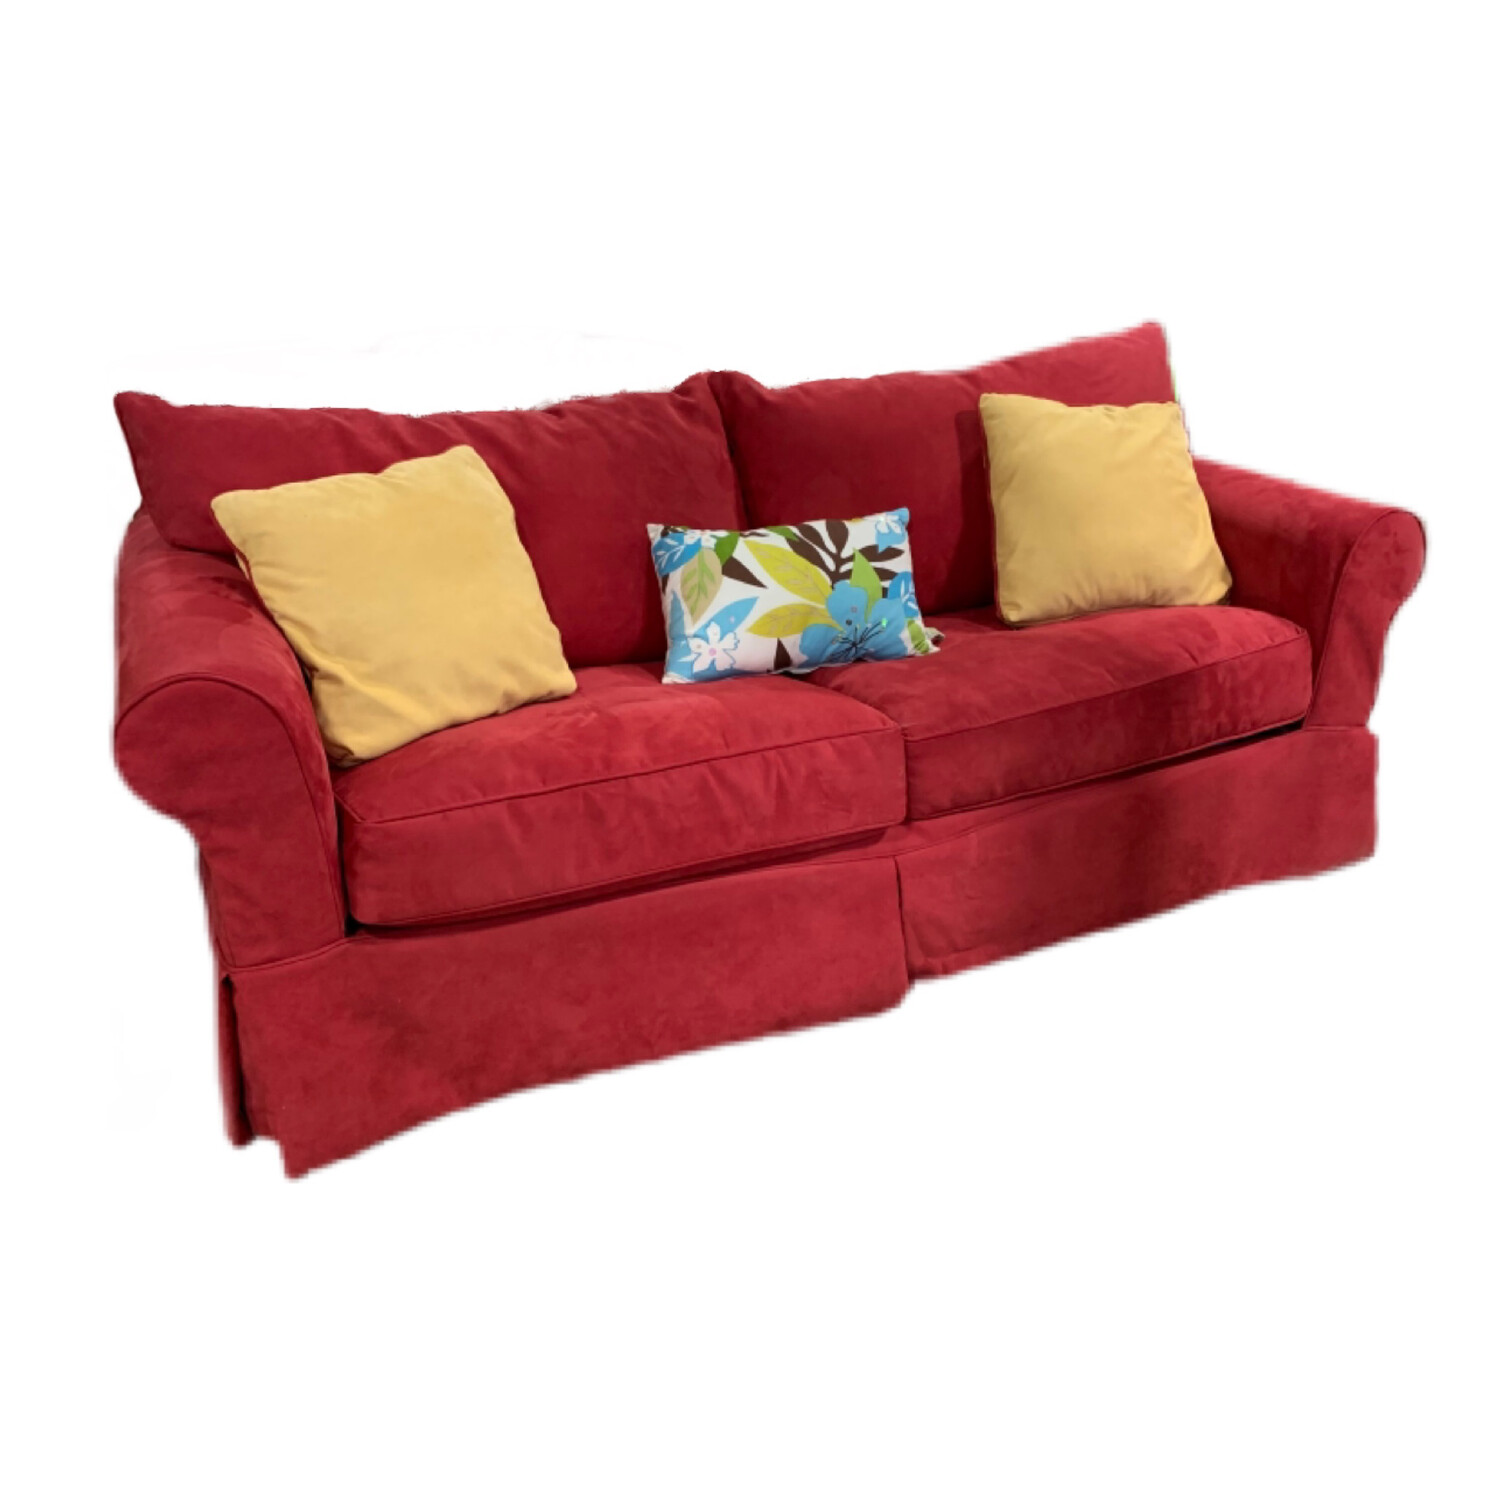 Red Sofa Bed With 3 Decorative Cushions